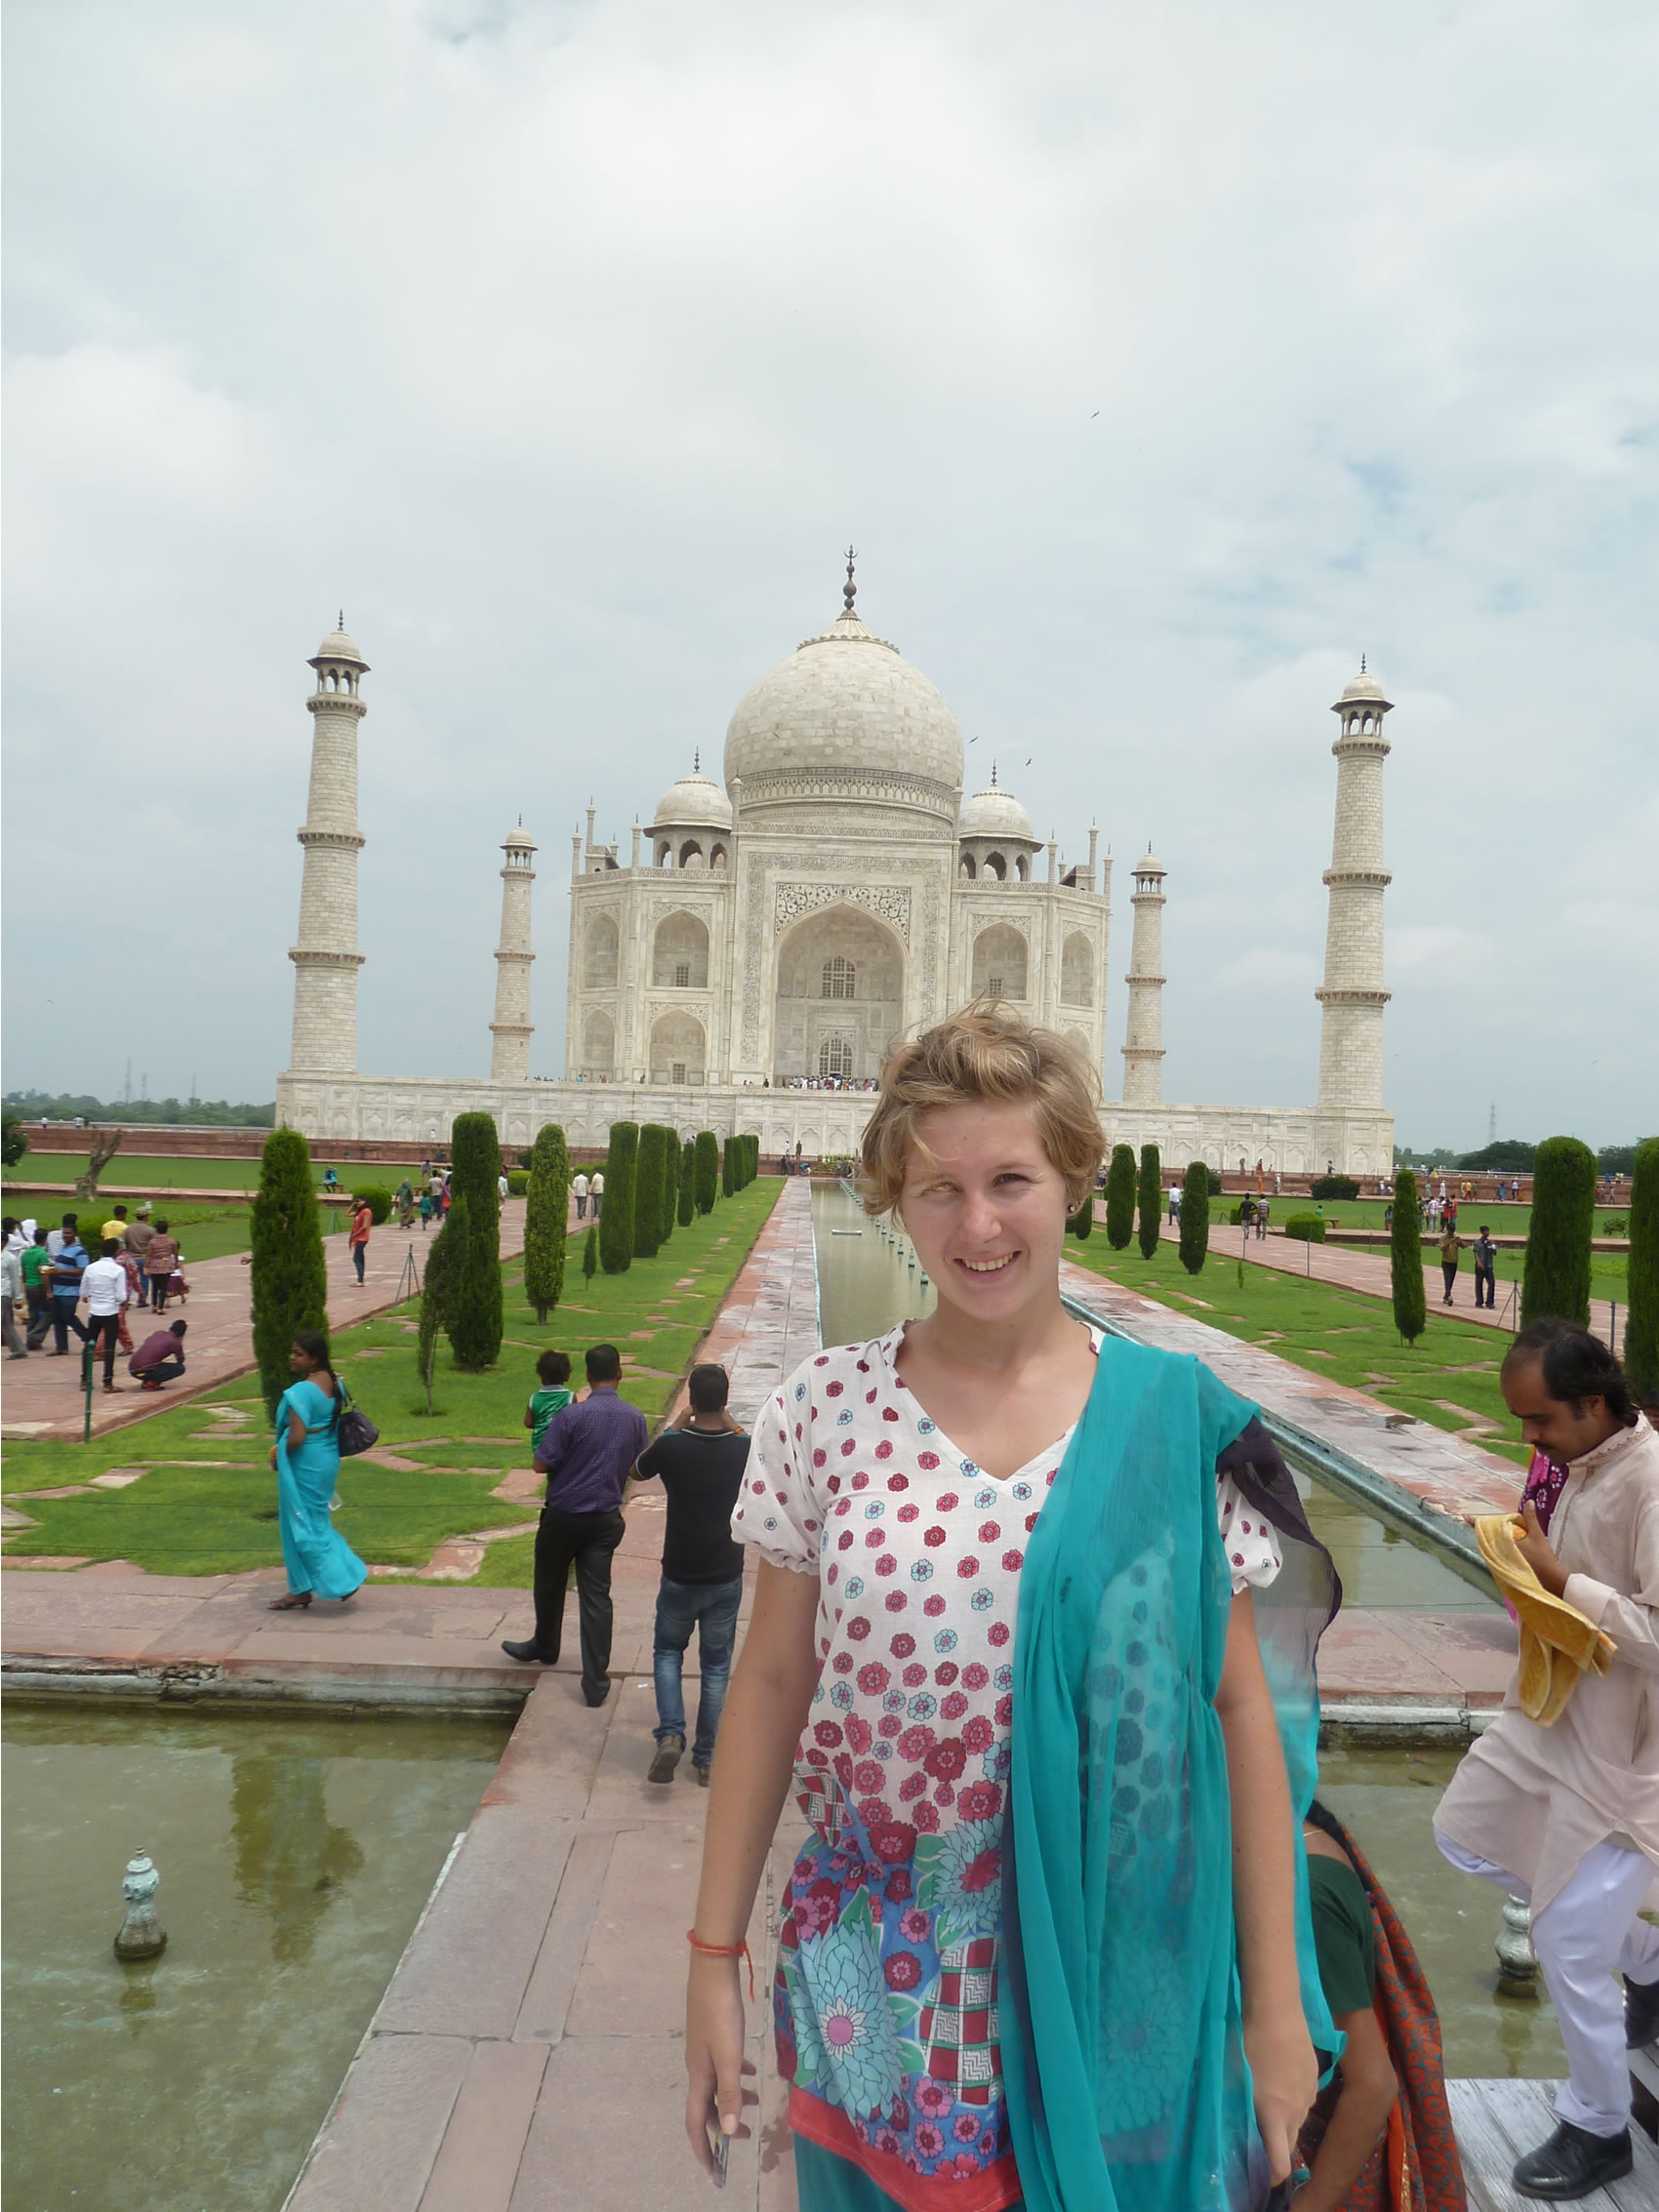 My Gap year travel adventure to India with Sofie Schaffner - image credit Sofie Schaffner